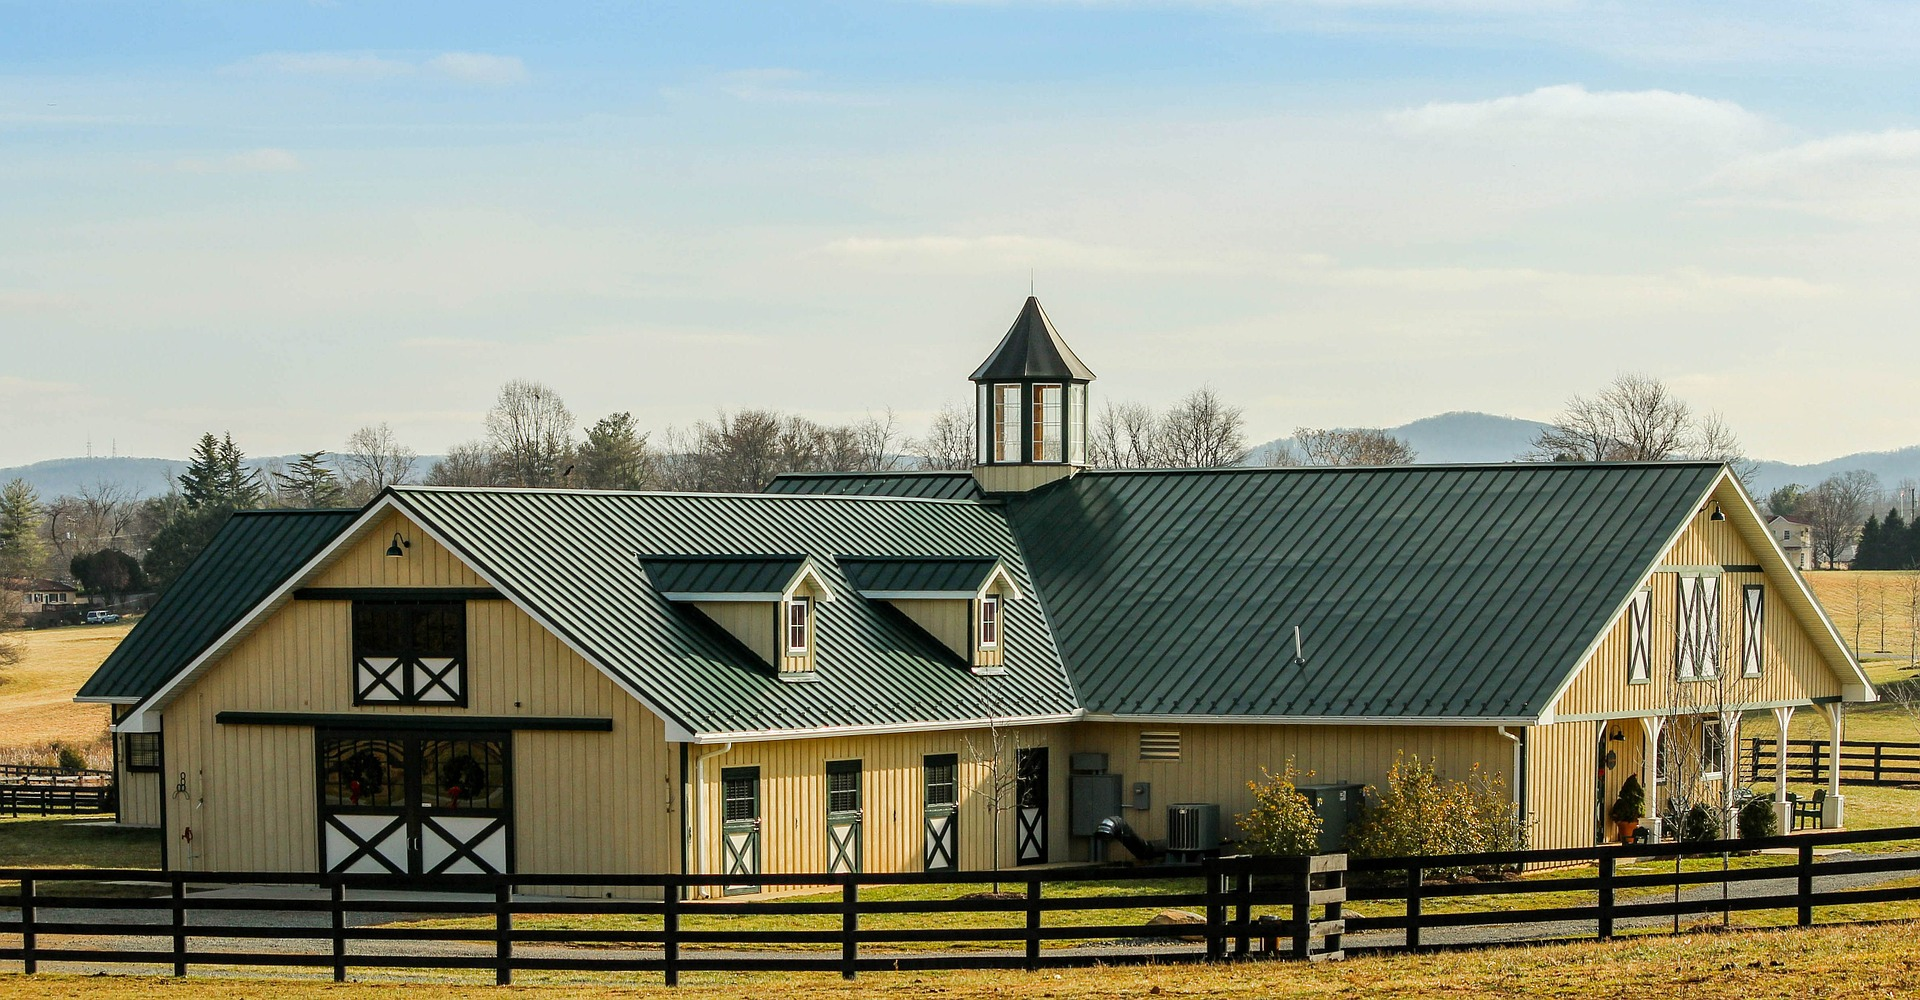 expensive-looking tan horse barn with green roof